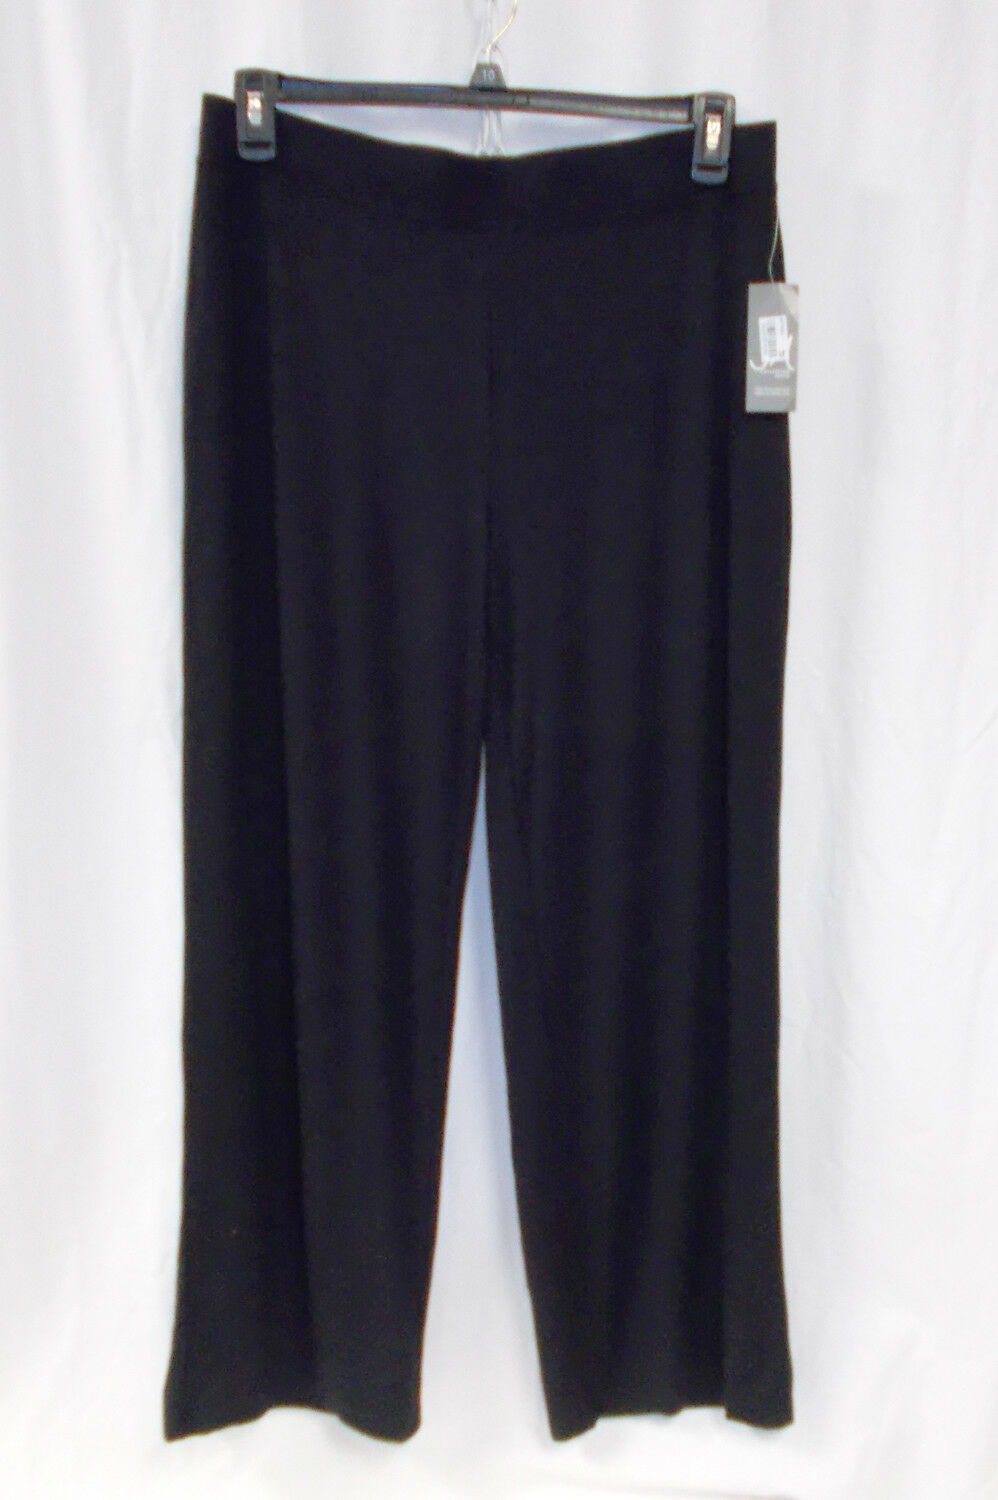 JM Collection Women's Relaxed-Fit Soft Pants PL NWT